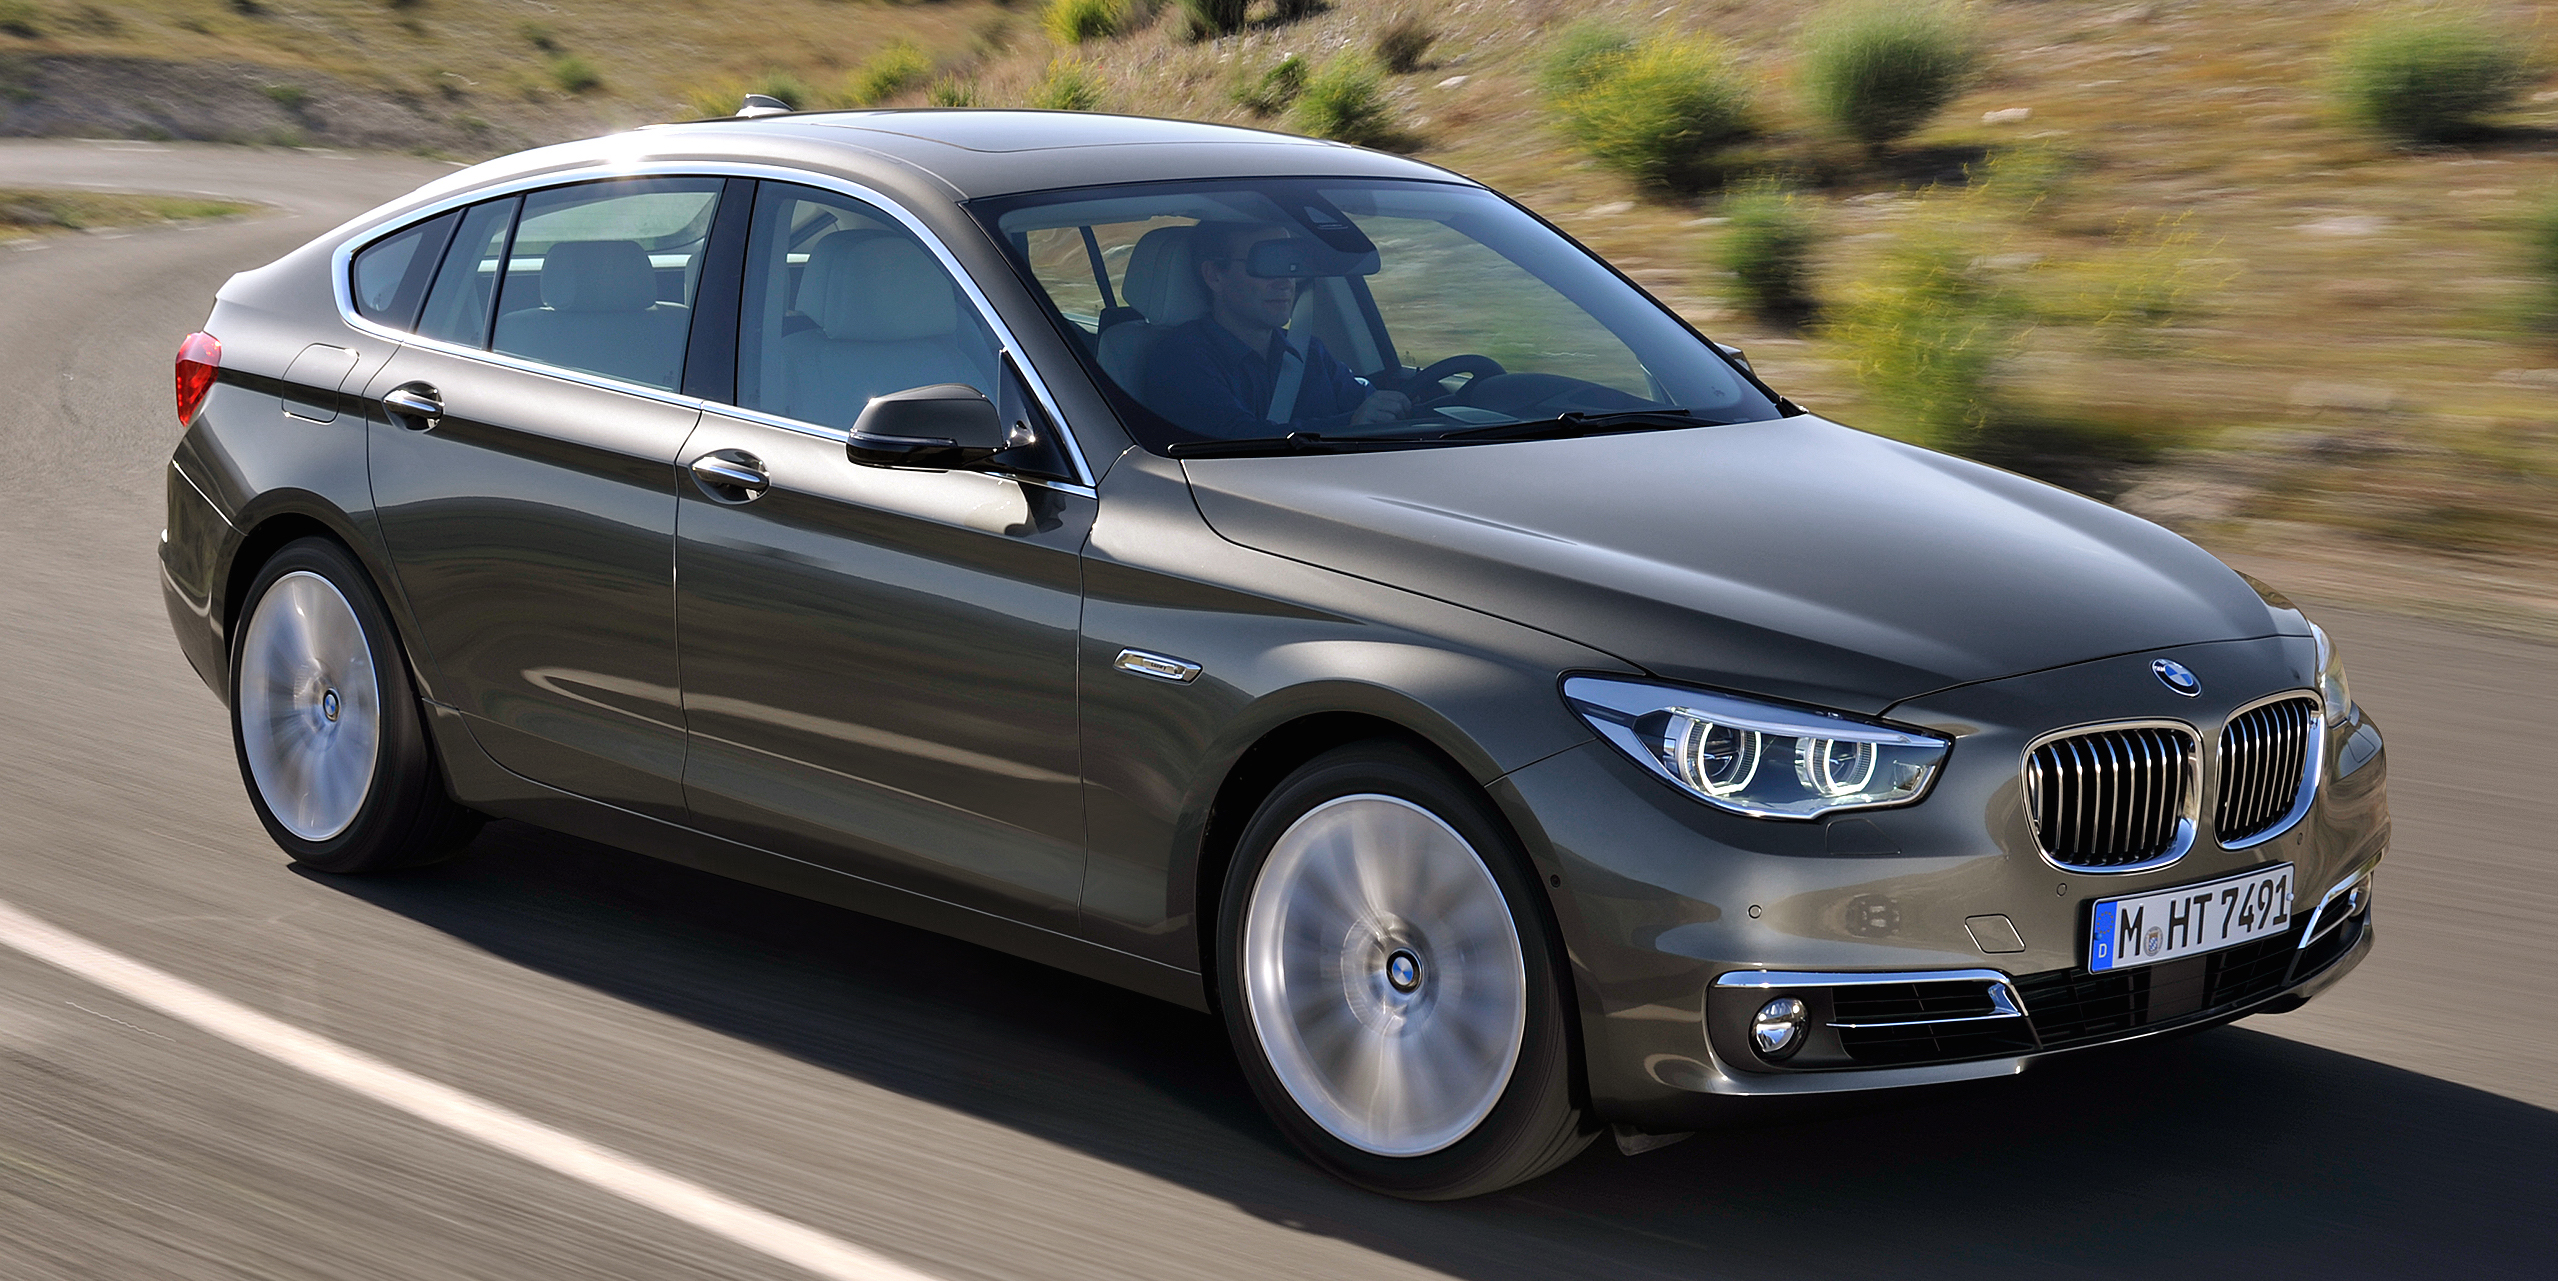 F10 BMW 5 Series sales exceed two million mark Image 476248